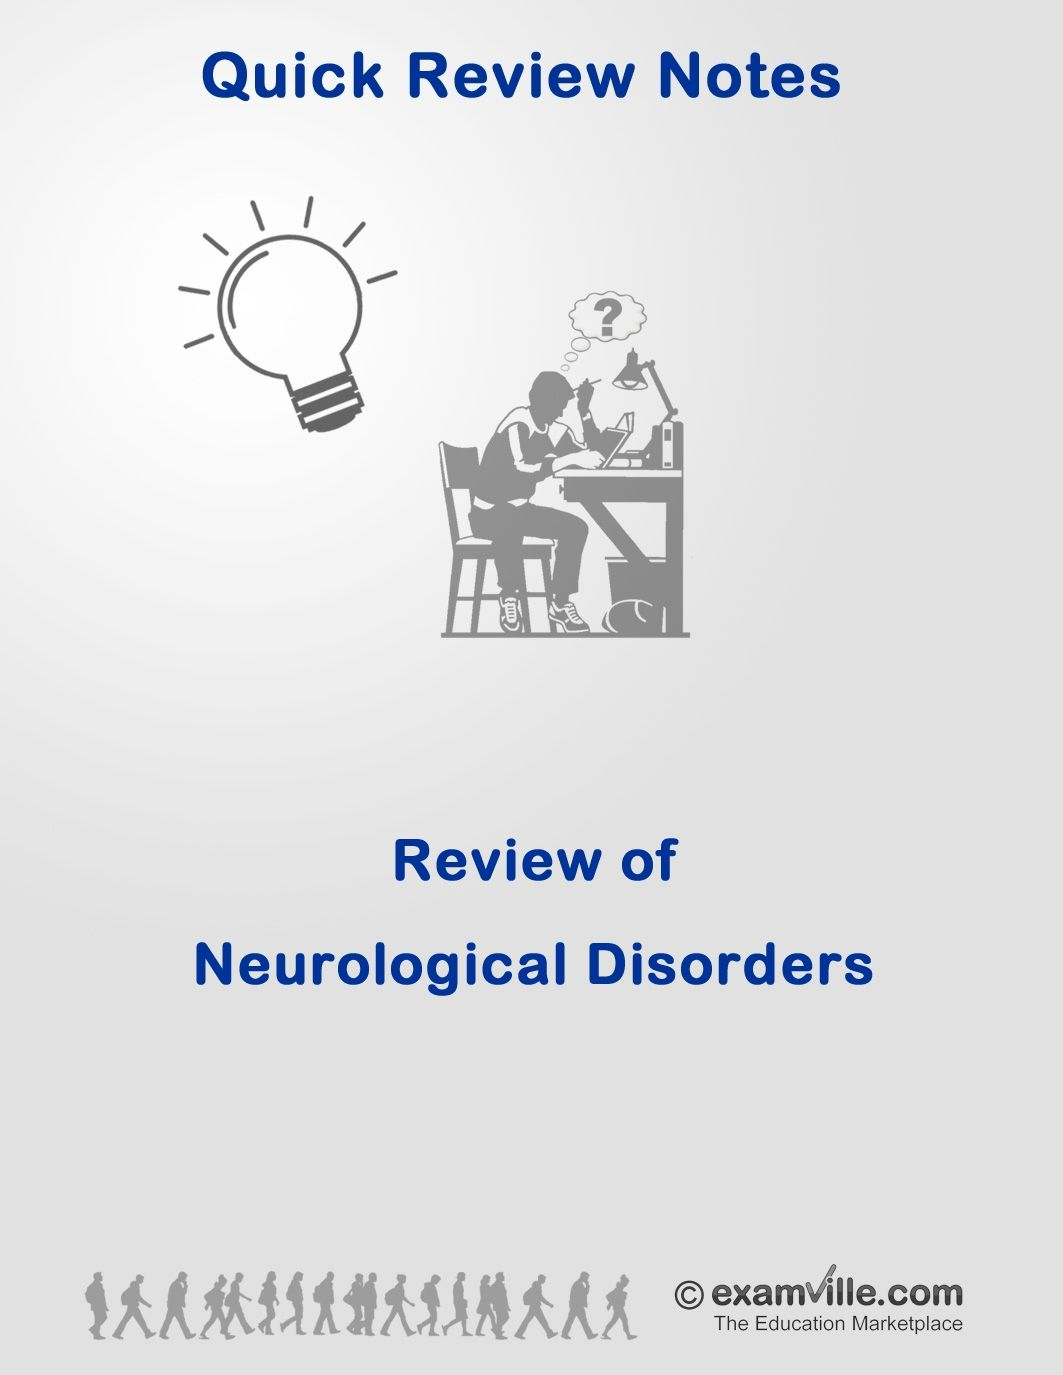 Quick Review of Neurological Disorders in Humans